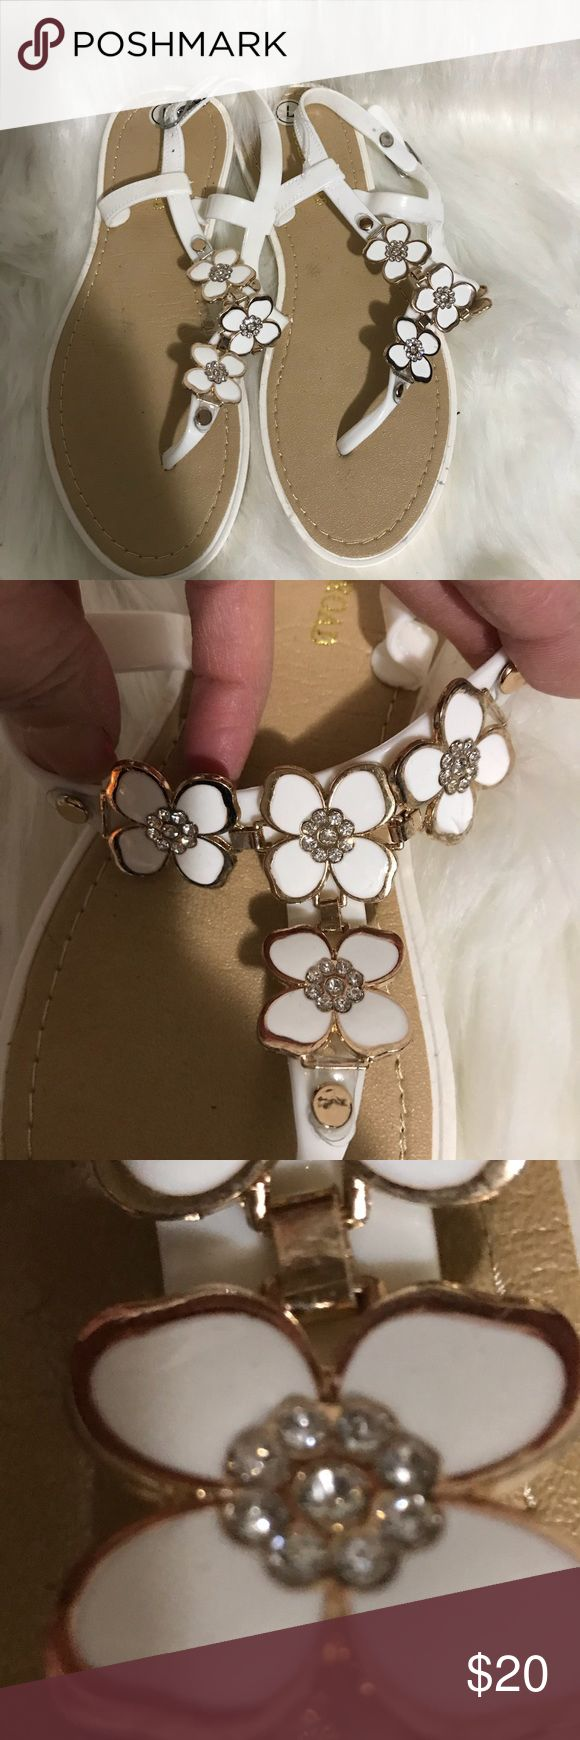 Very Pretty white and gold flower sandals. 7 Very Pretty white and gold flower sandals. 7 Shoes Sandals